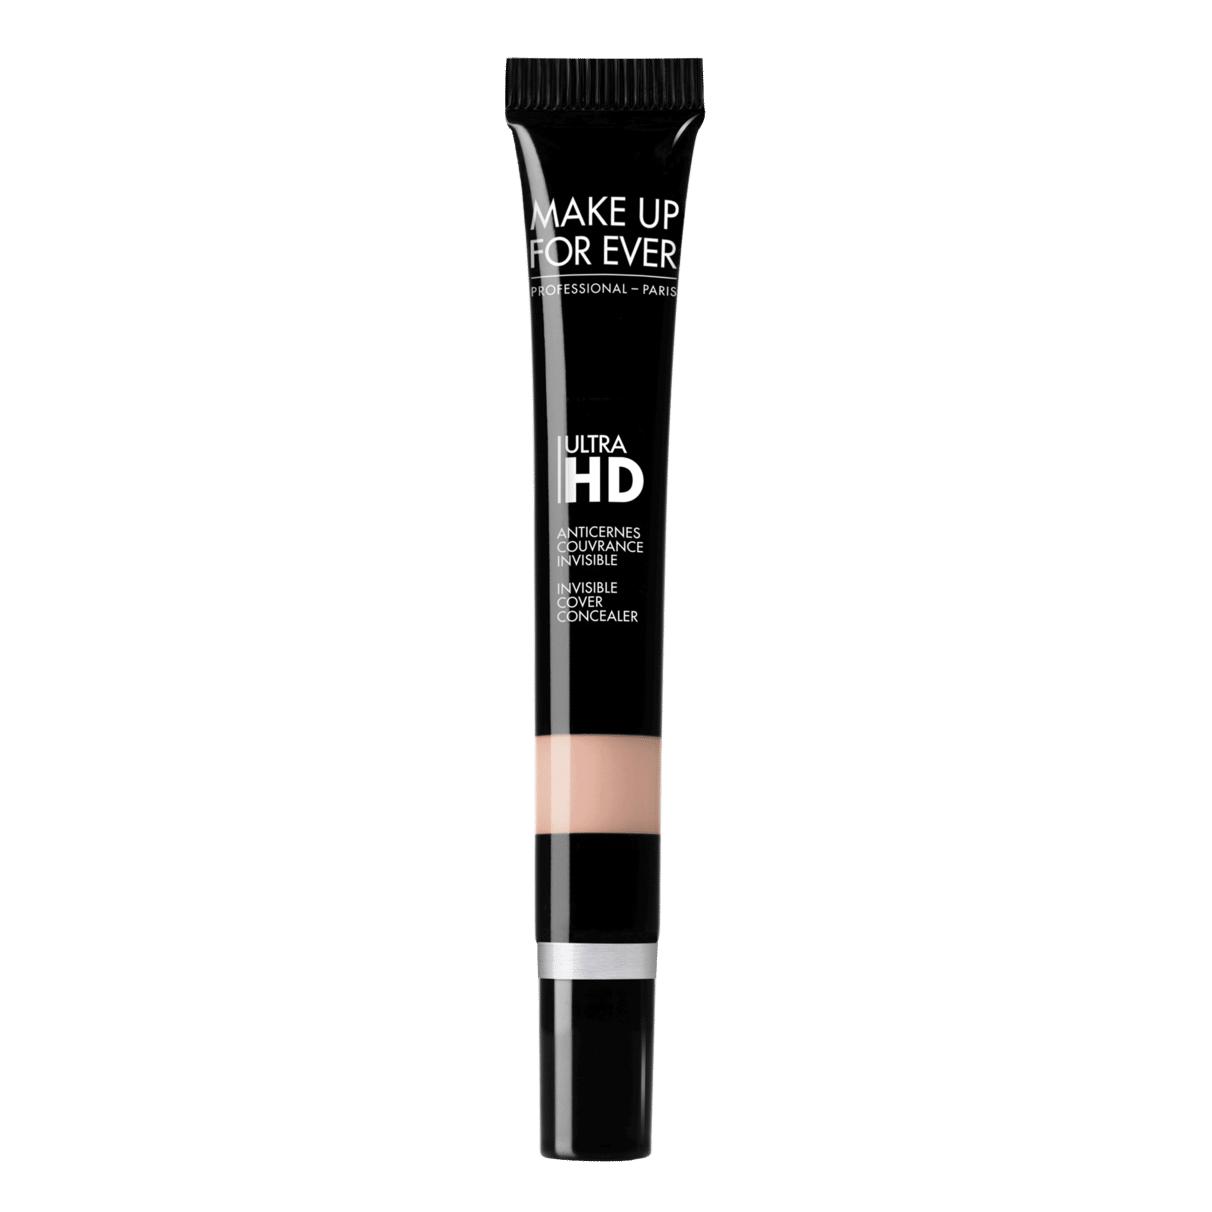 anticerne couvrance invisible ultra hd make up for ever 70234 - Coup de coeur pour l'anti-cernes ULTRA HD de Make Up For Ever